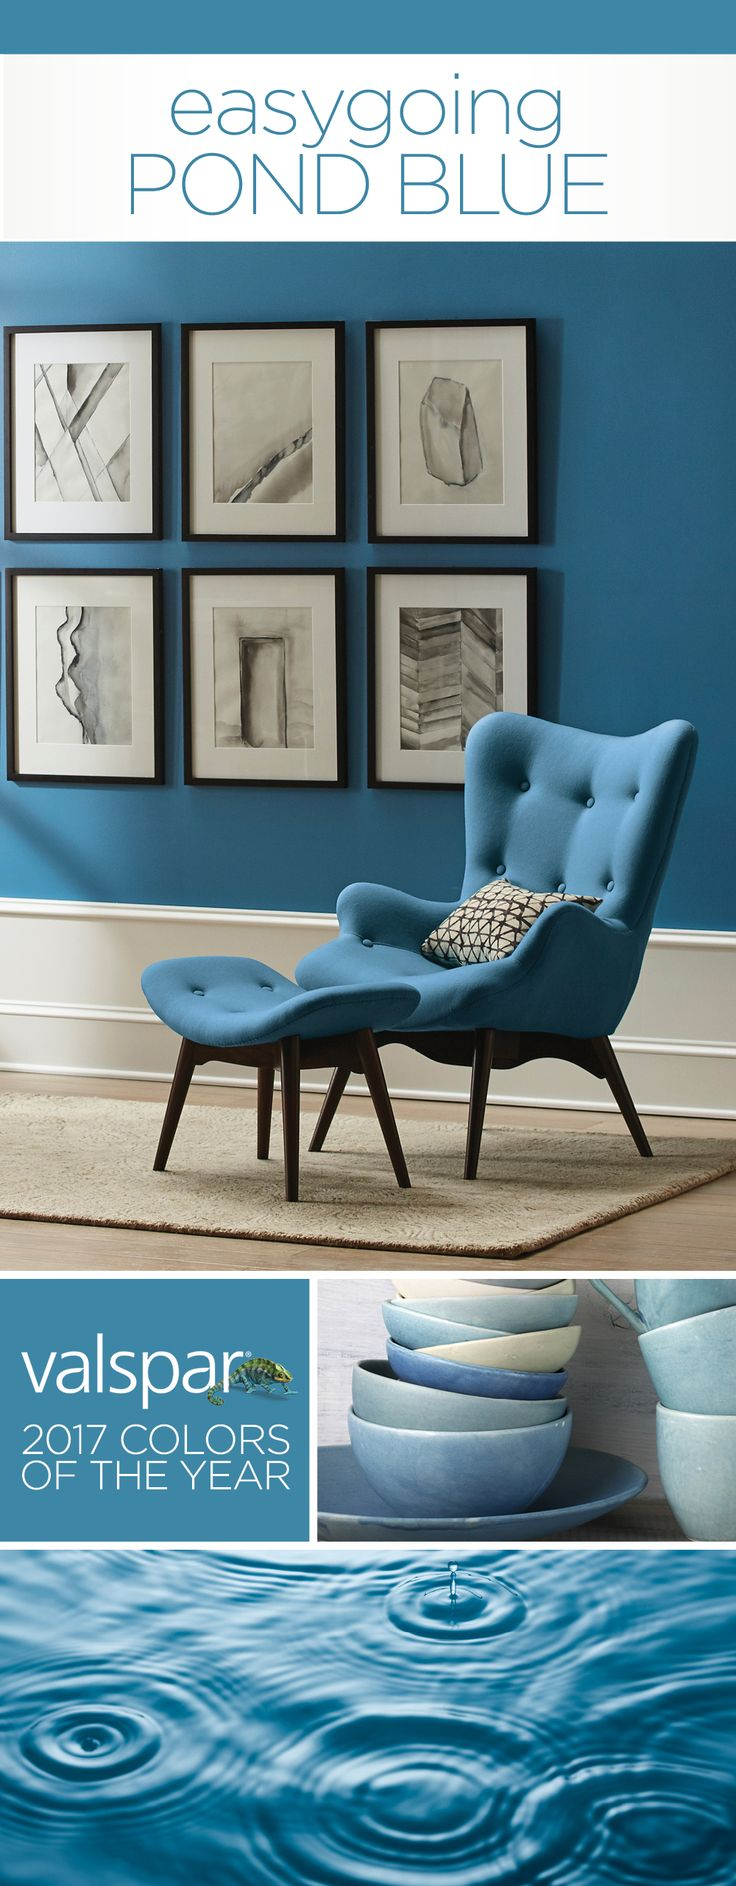 Watery Blue Has A Touch Of Gray Making It Easy To Pair With Wide Range Colors One 12 Valspar 2017 The Year Roadster At Lowes